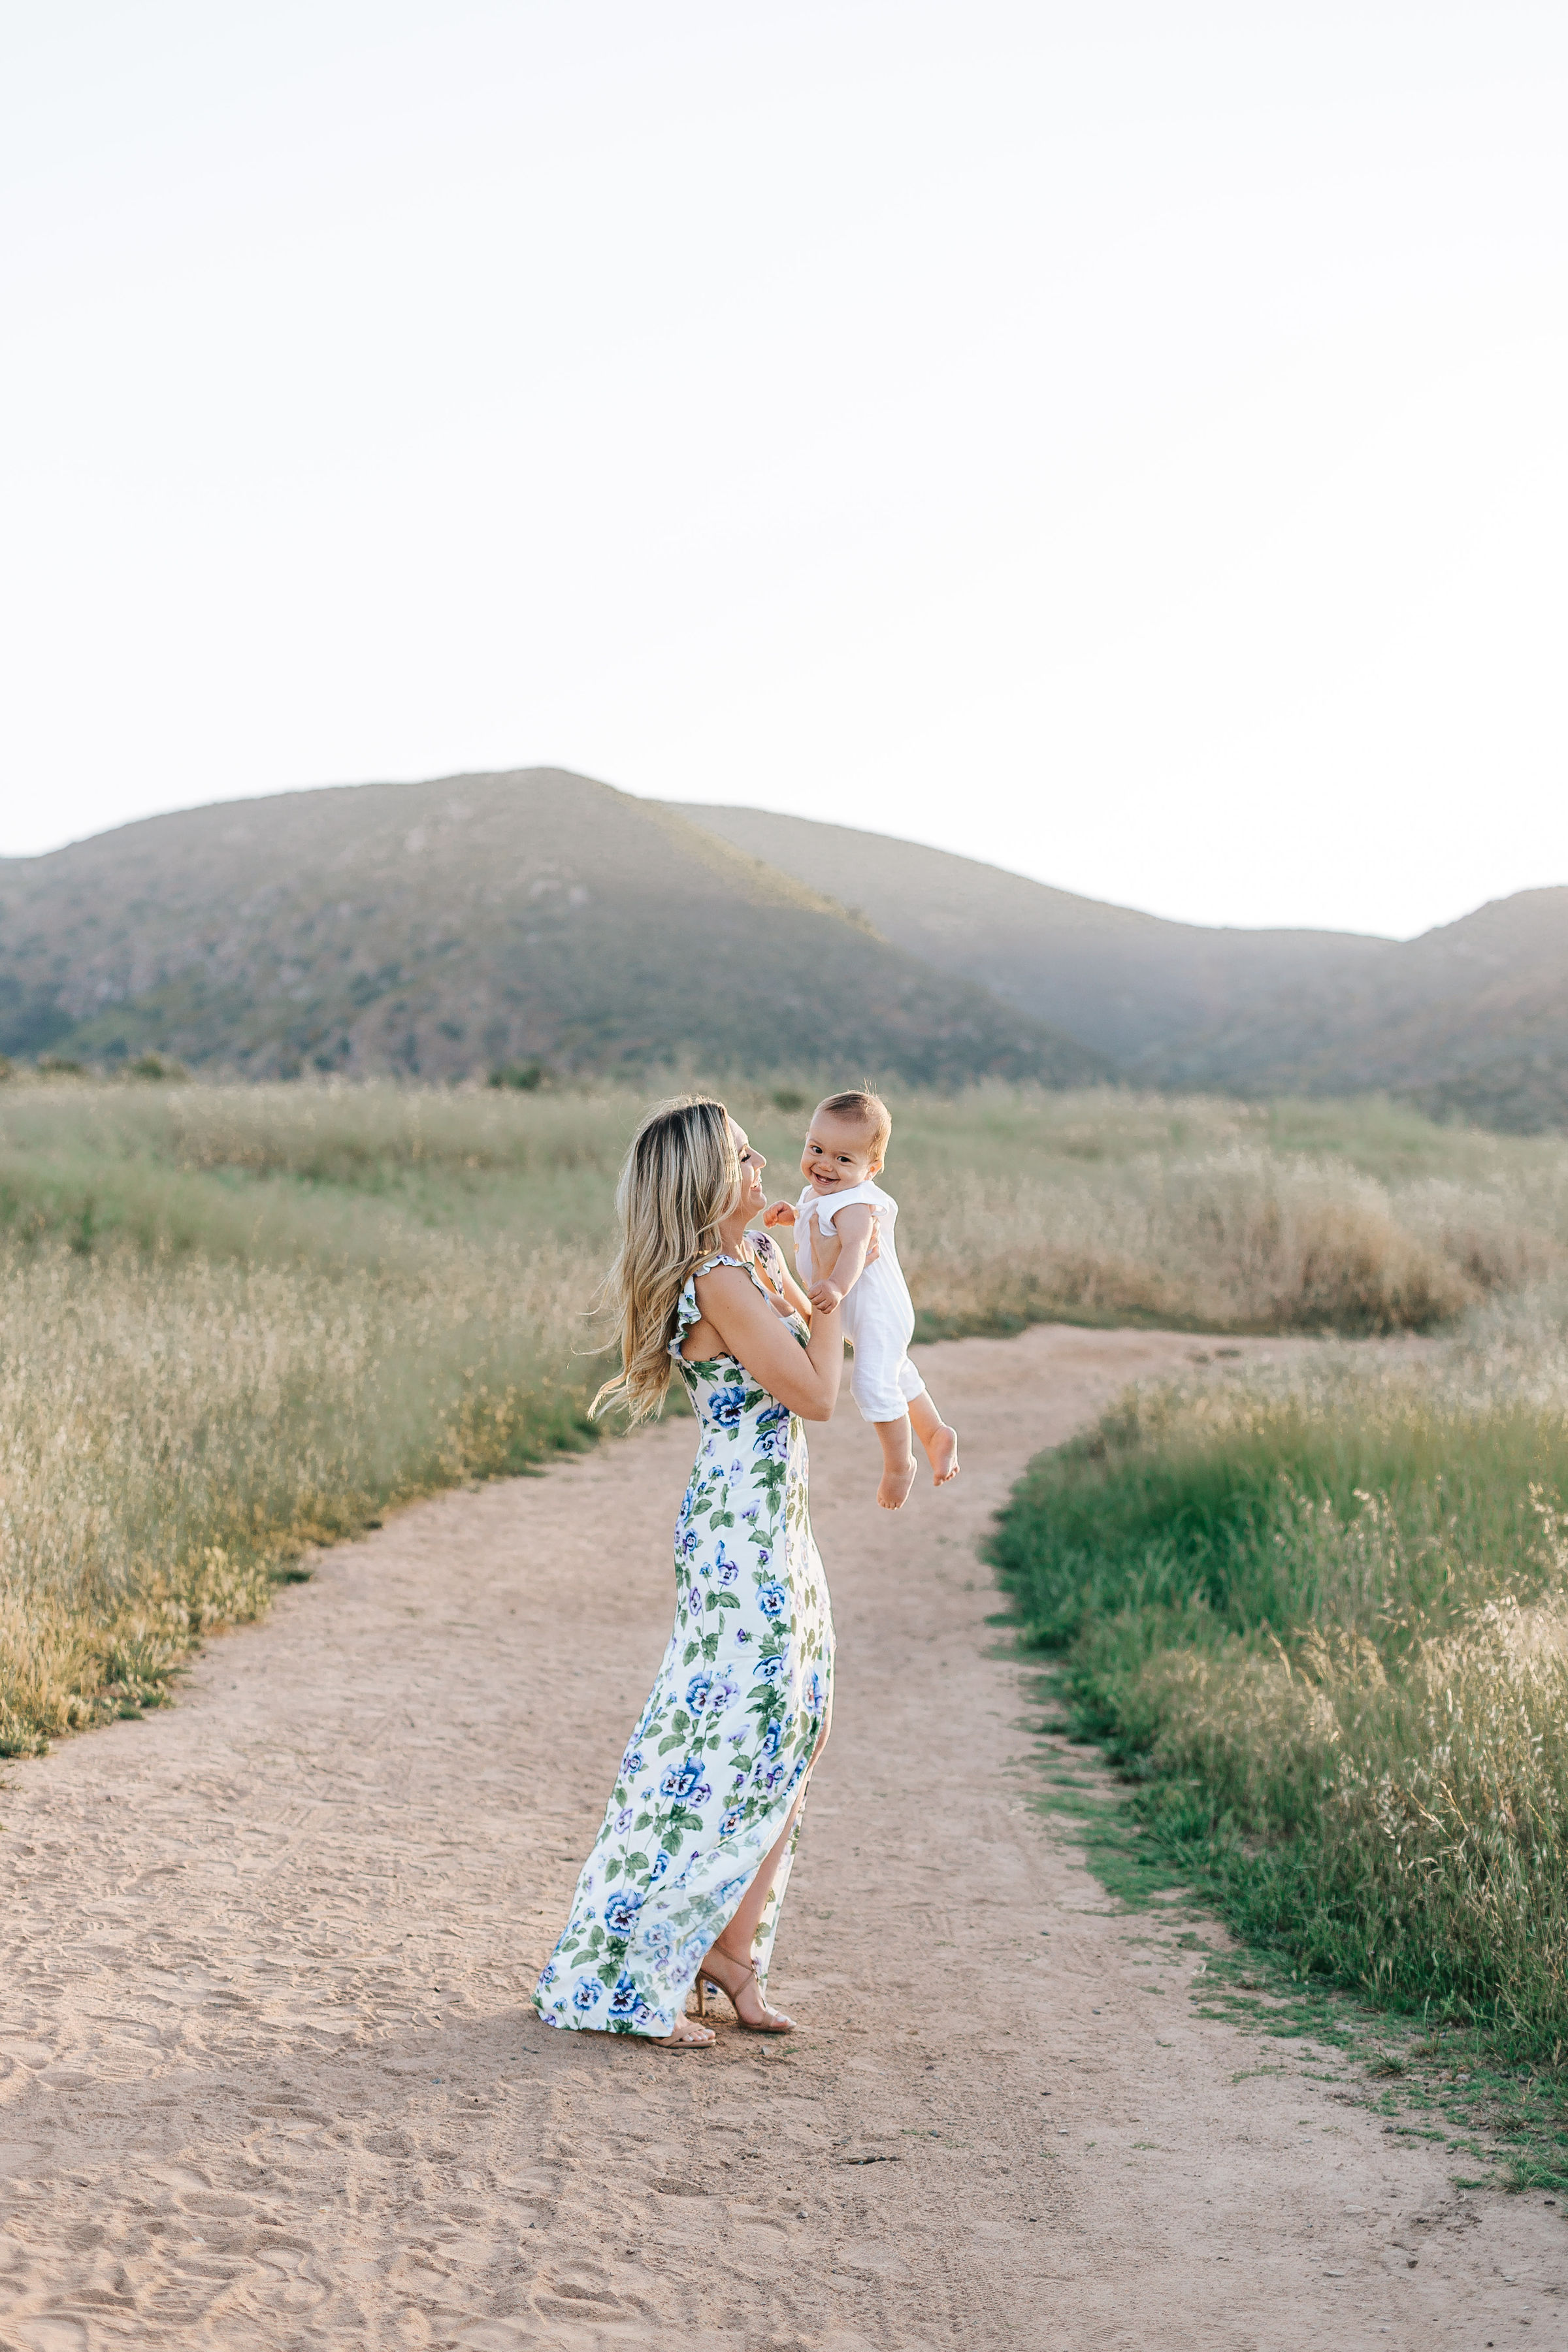 Mission trails Family Session